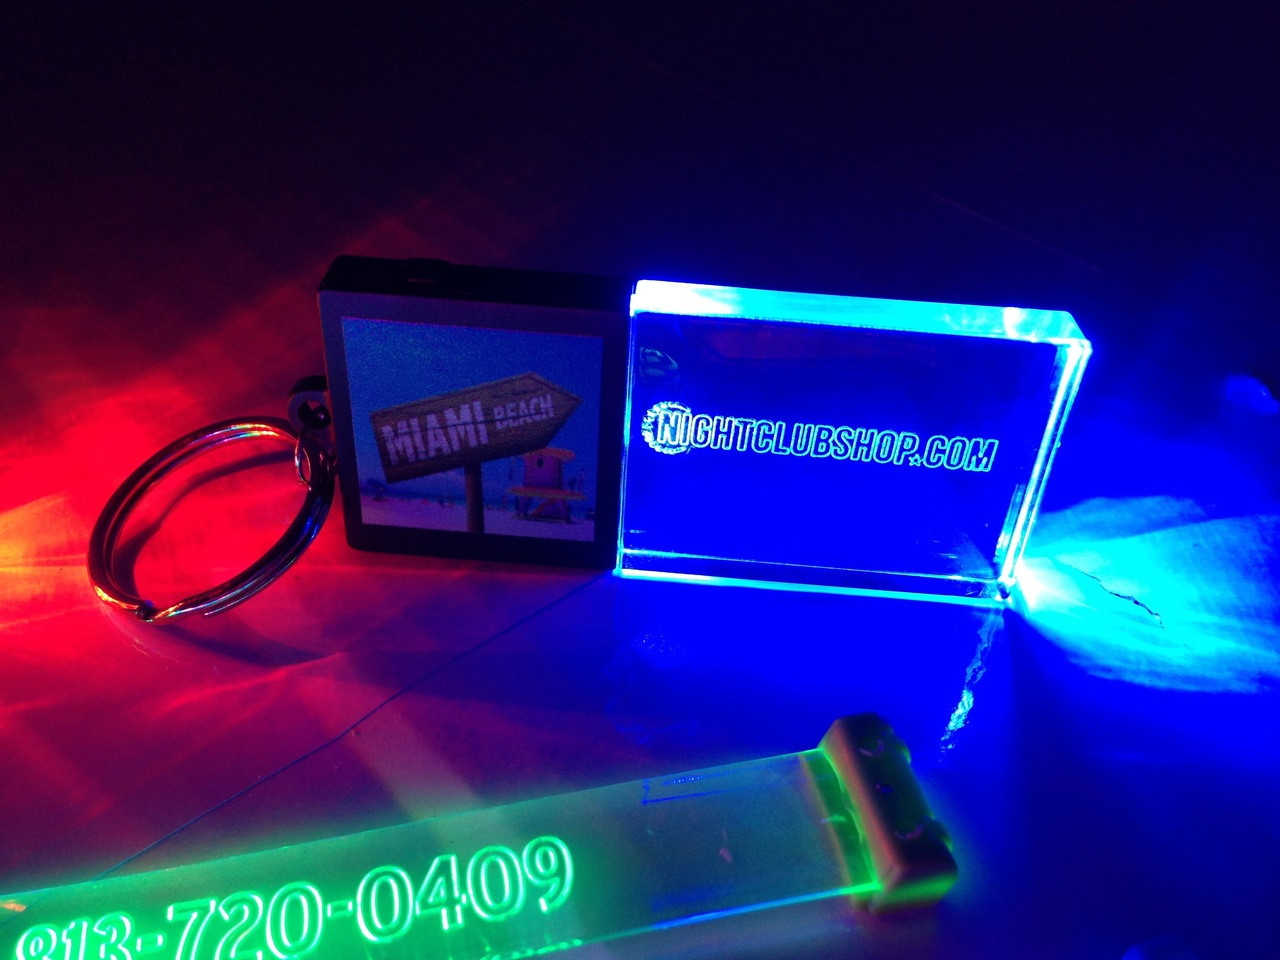 LED,Keychain,Key,chain,LED keychain, custom, BEAM, dual, print,engraved, logo,text, laser engraved,personalized,promo,merch,fundraiser,nightclub,fund raiser,light up